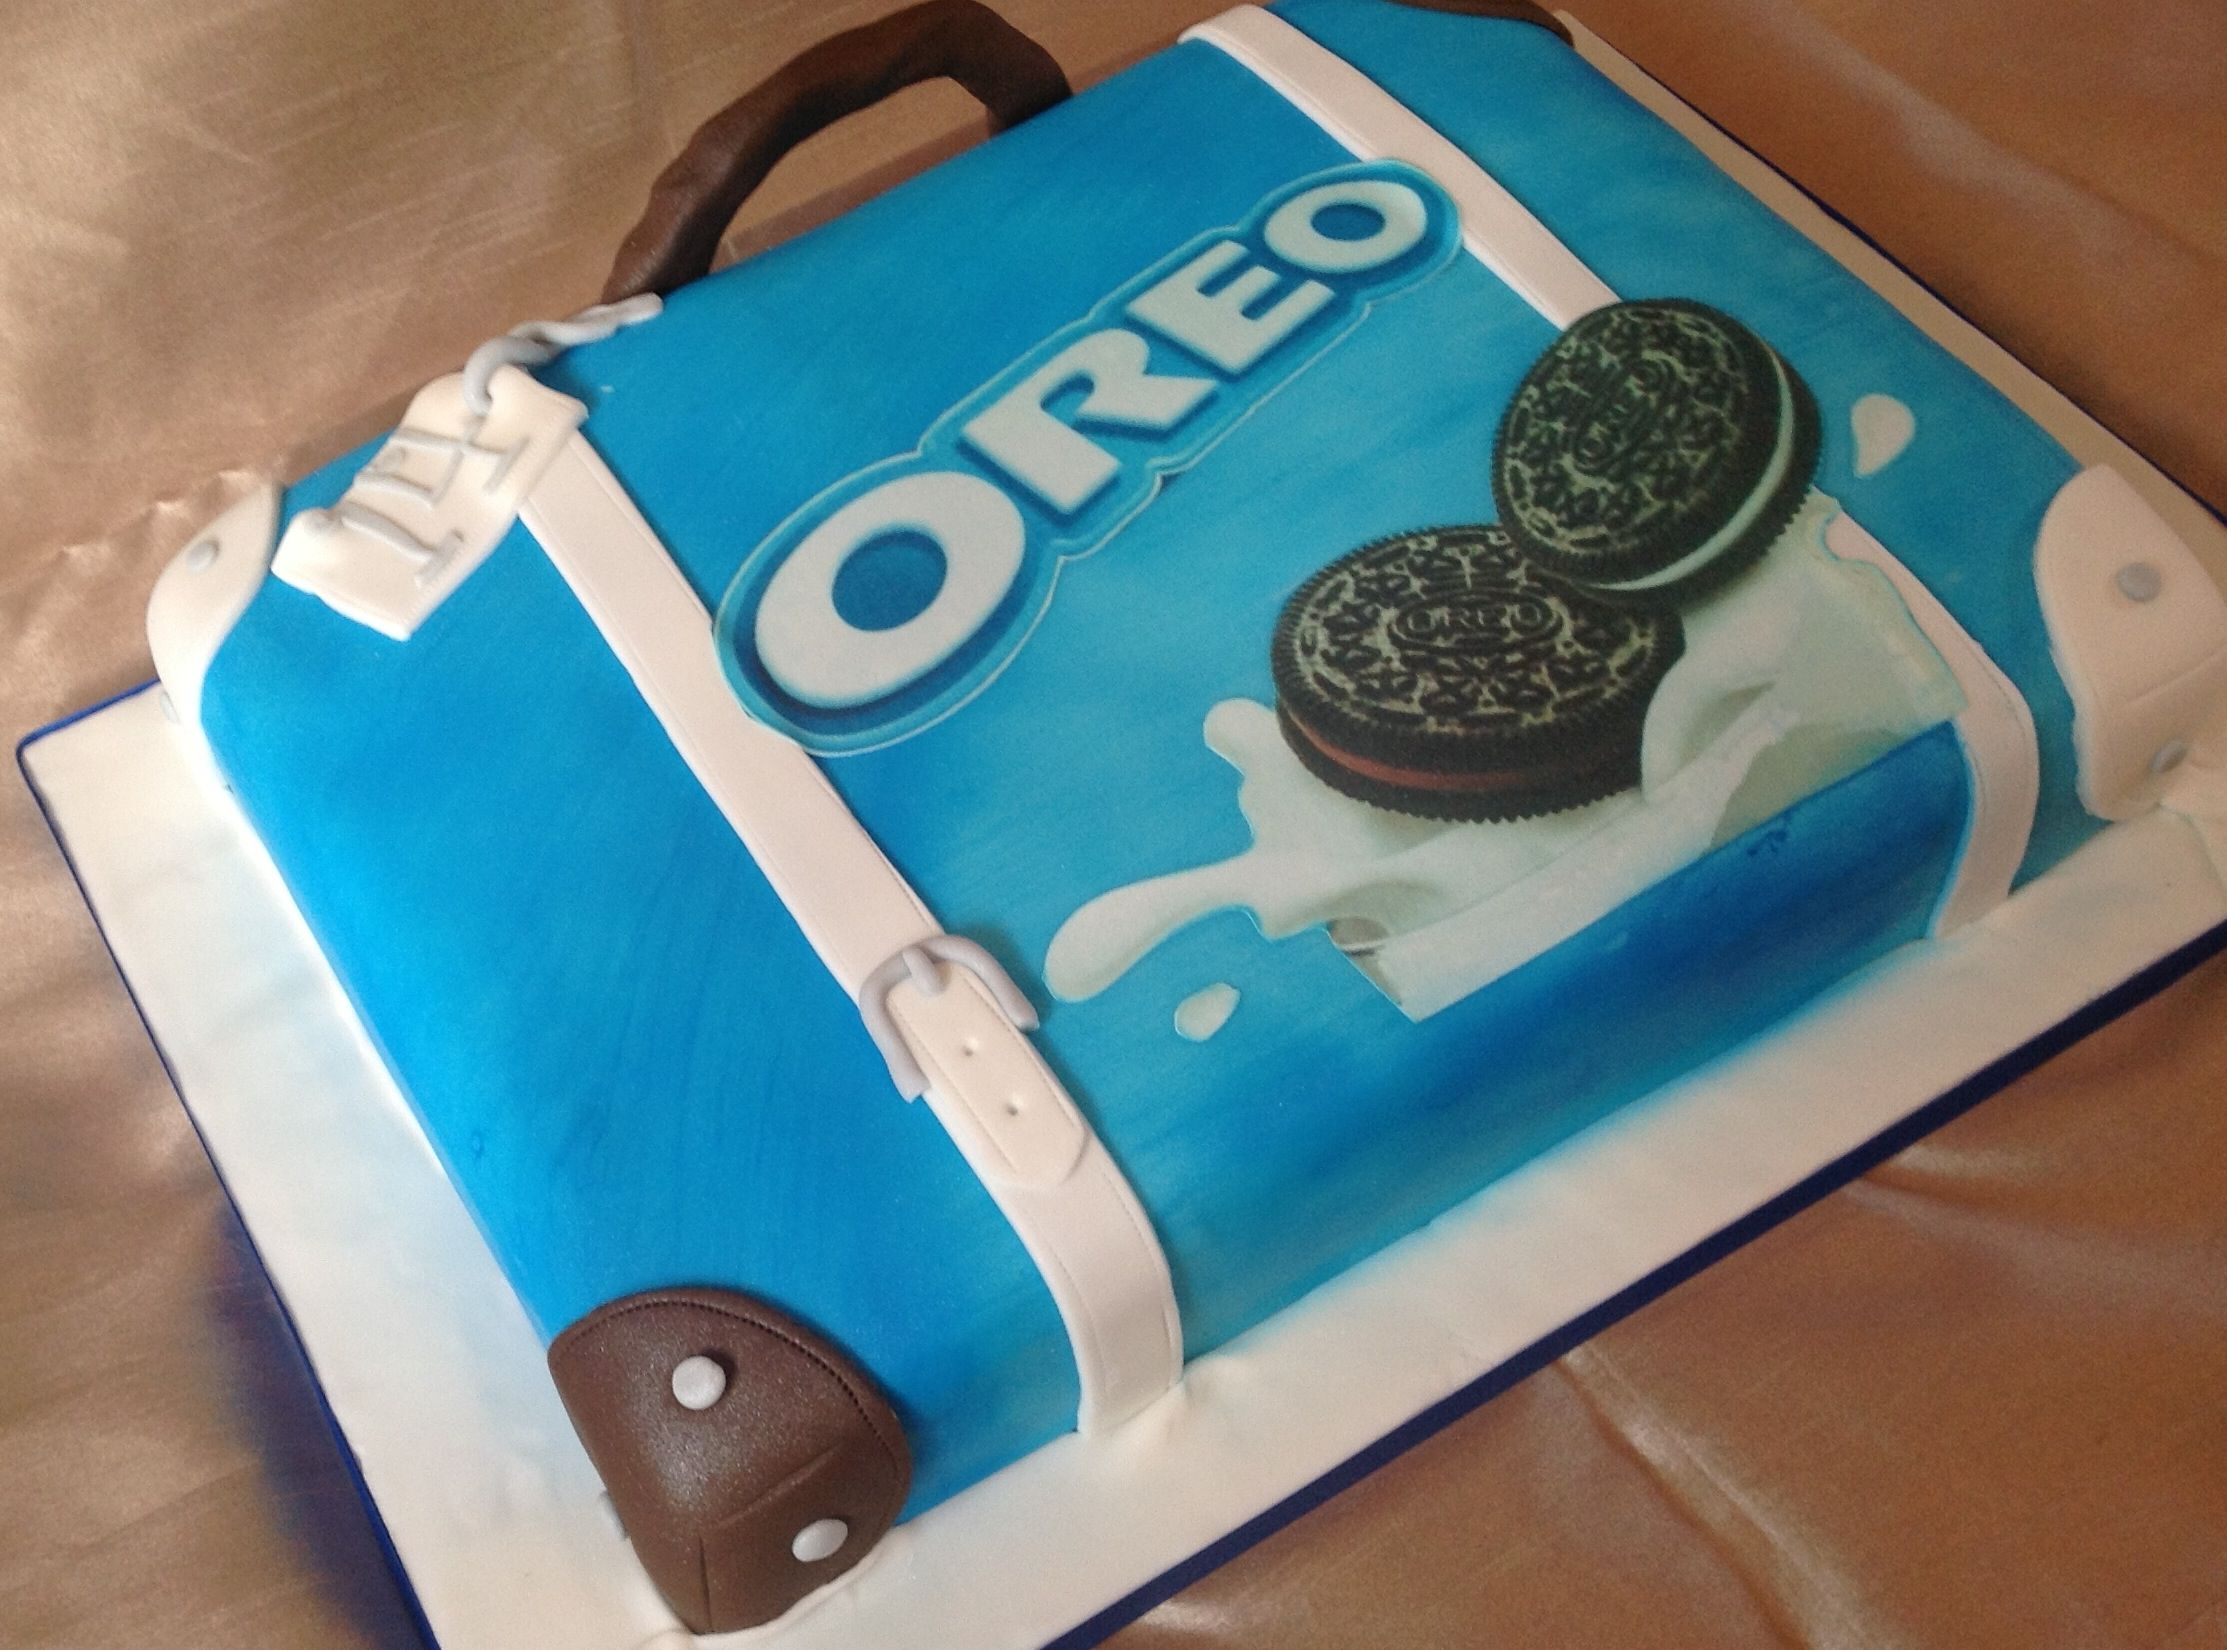 Oreo suitcase loved making this cake Purple sparkle cakes Www